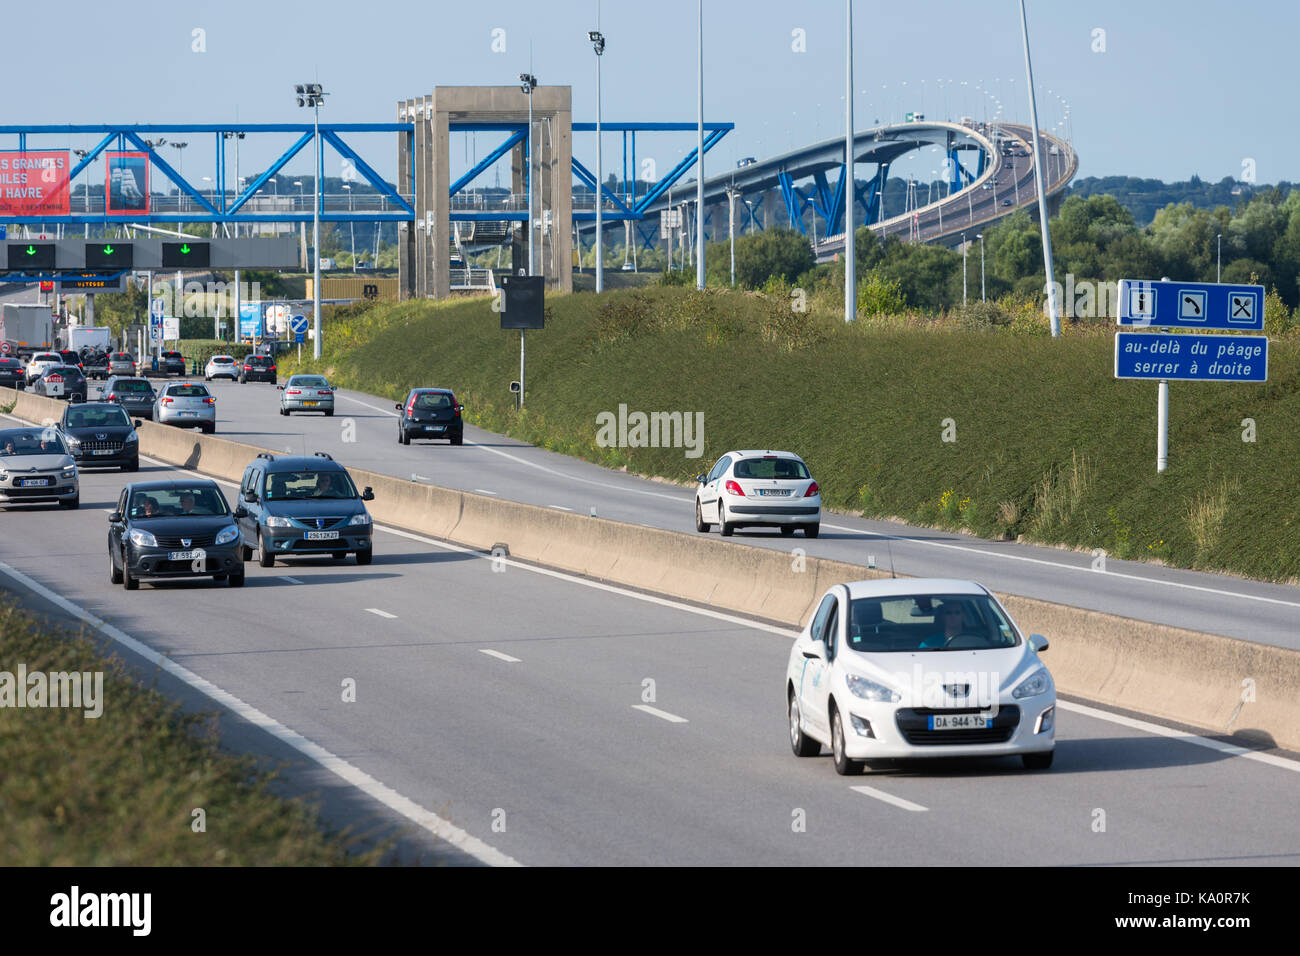 french motorway toll stock photos french motorway toll. Black Bedroom Furniture Sets. Home Design Ideas